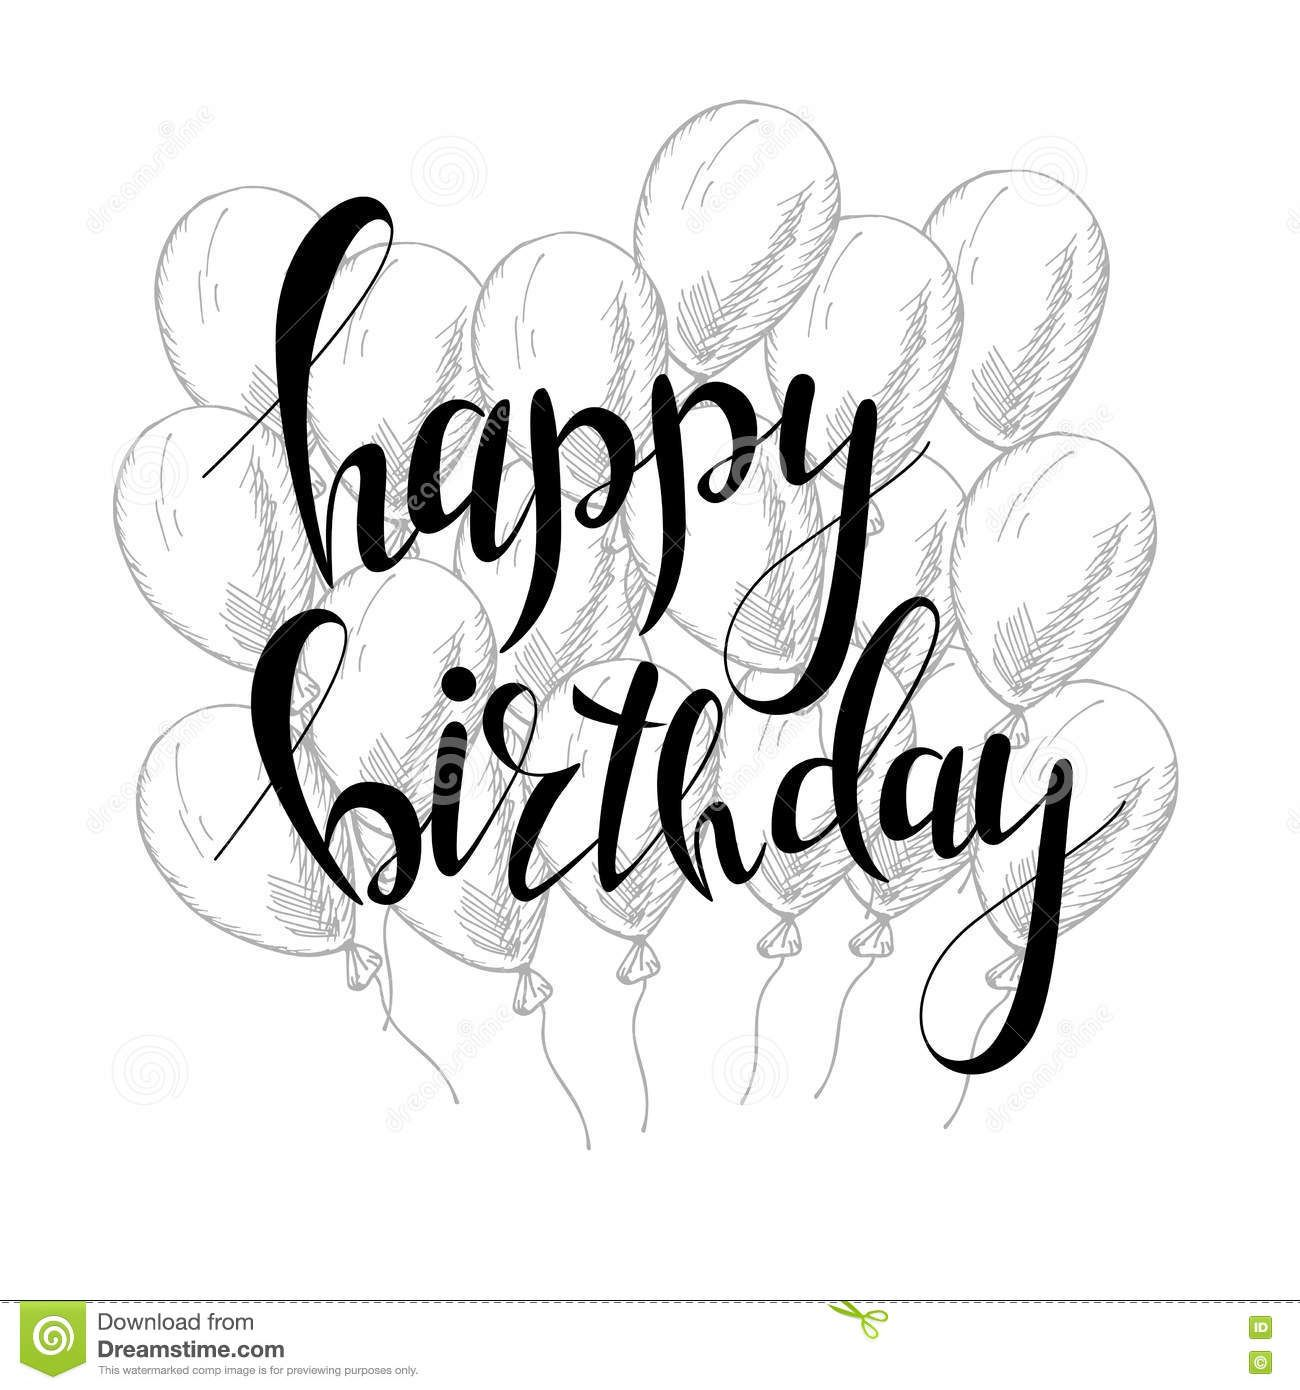 Vector hand lettering happy birthday greeting card with calligraphy happy birthday greeting card with calligraphy design black and white overlay download from over 52 million high quality stock photos images vectors m4hsunfo Gallery